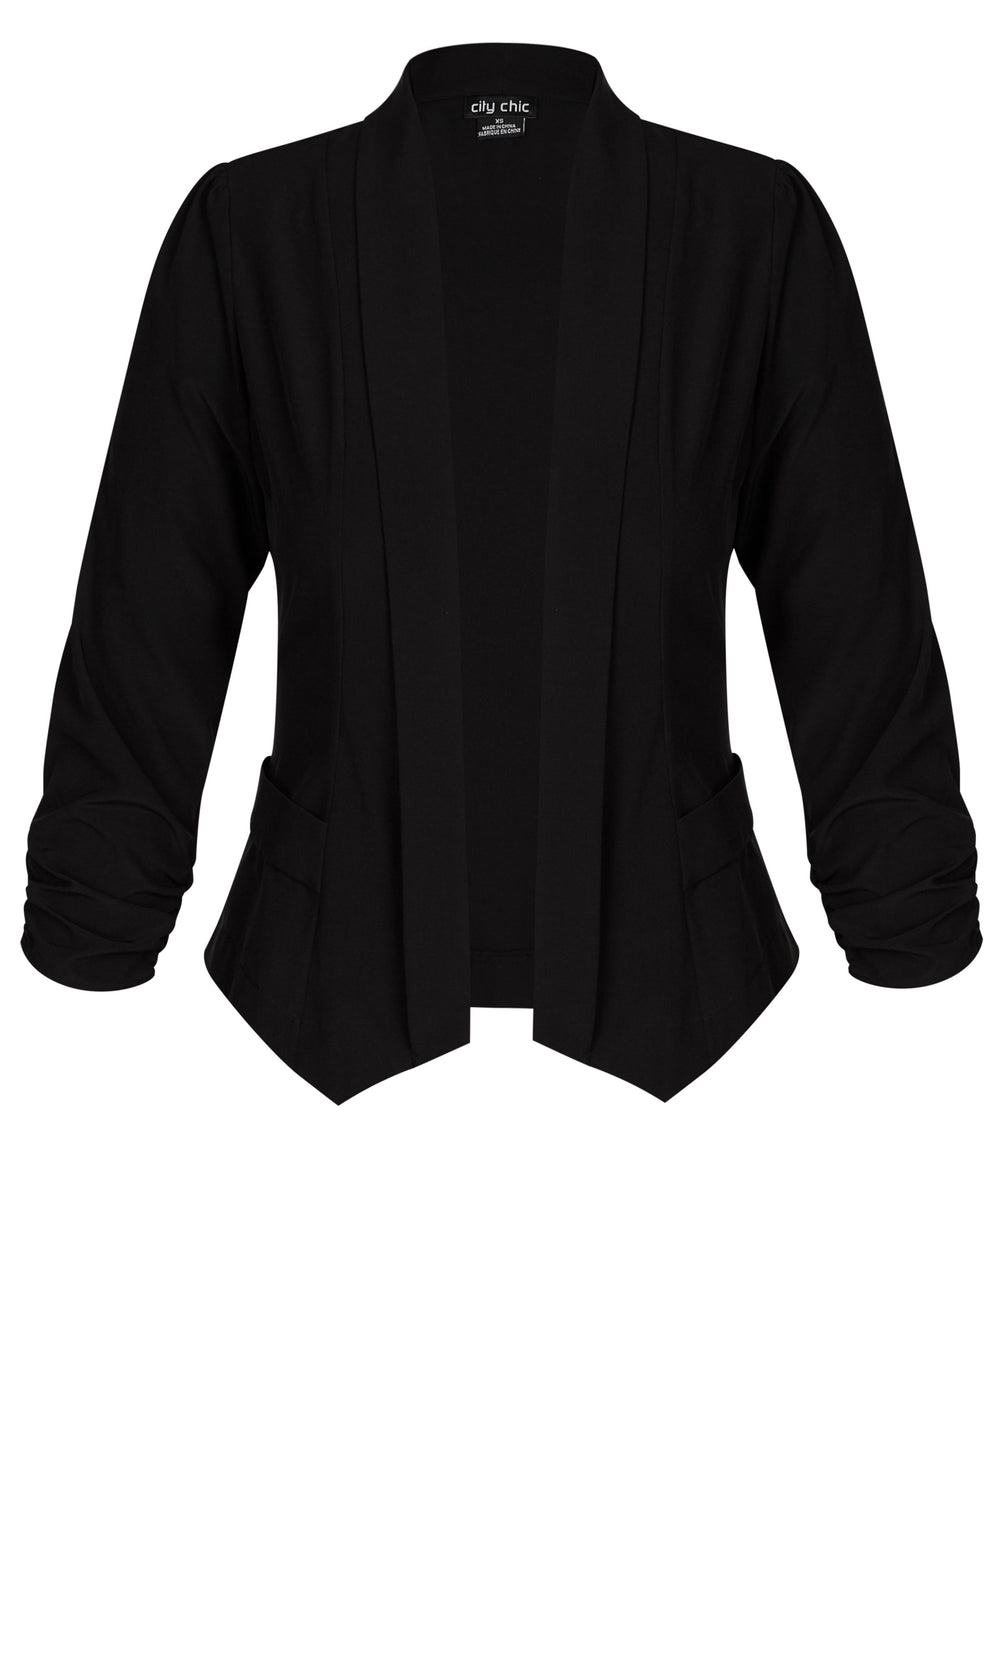 city chic classic black jacket